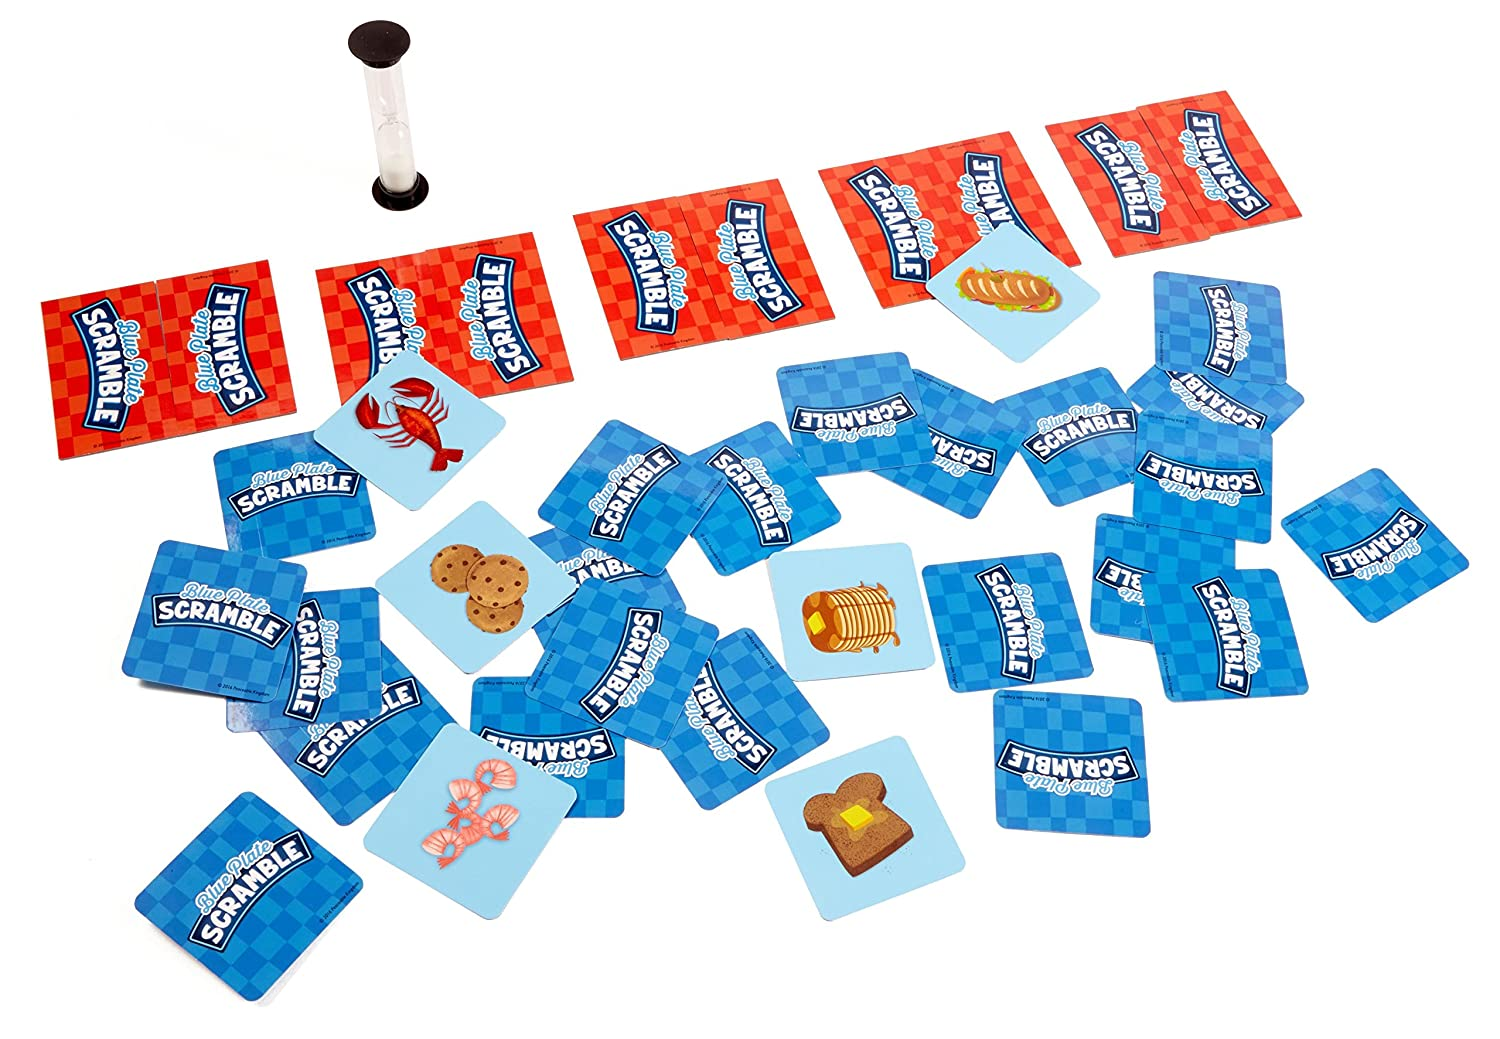 Amazon.com: Blue Plate Scramble Game: Toys & Games